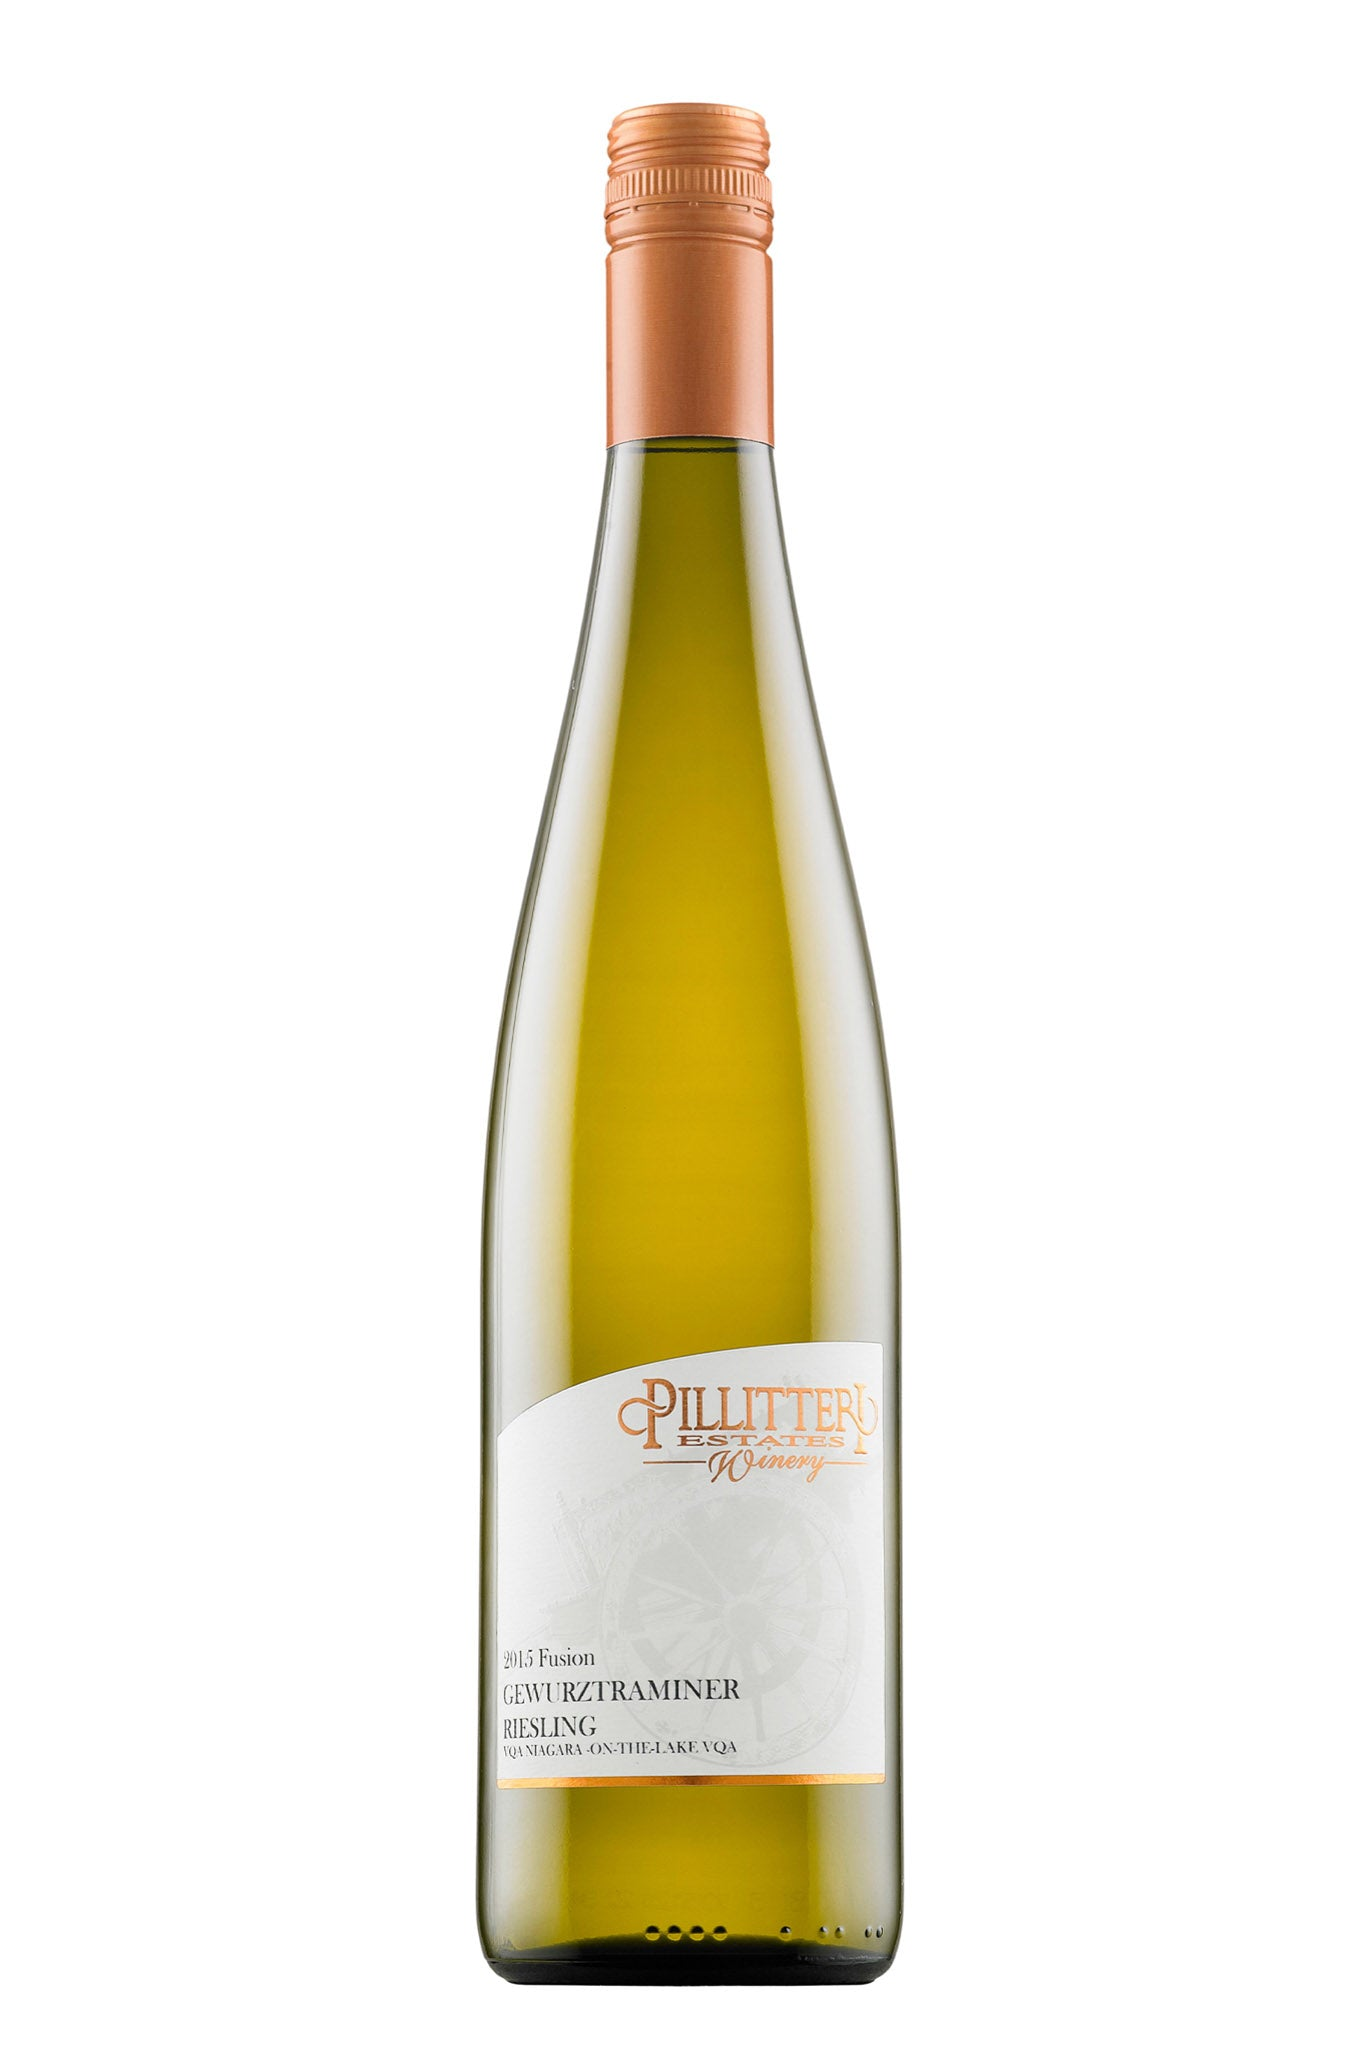 Pillitteri Estates Winery Gewürztraminer / Riesling 2017 • Weisswein • Kanada • Niagara on the Lake • 750 ml